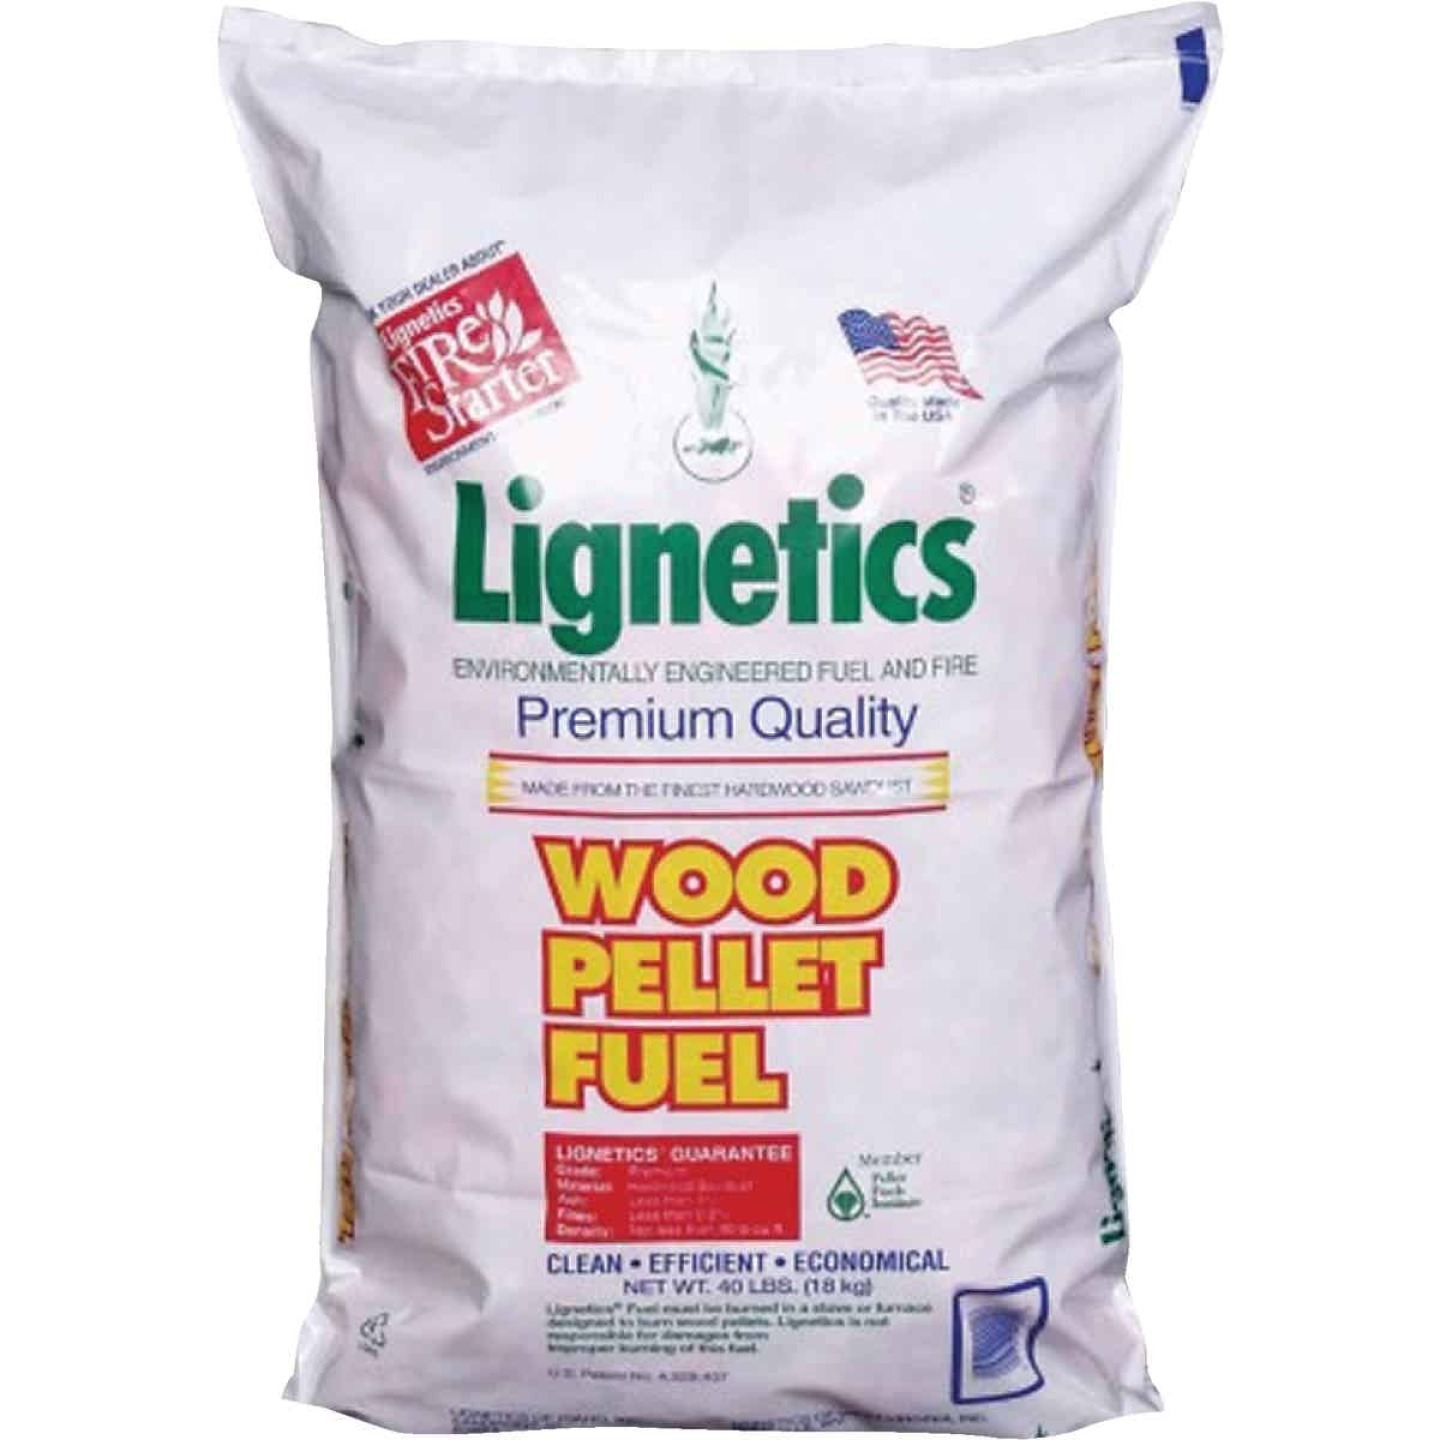 Lignetics 40 Lb. Wood Pellet Fuel Image 1